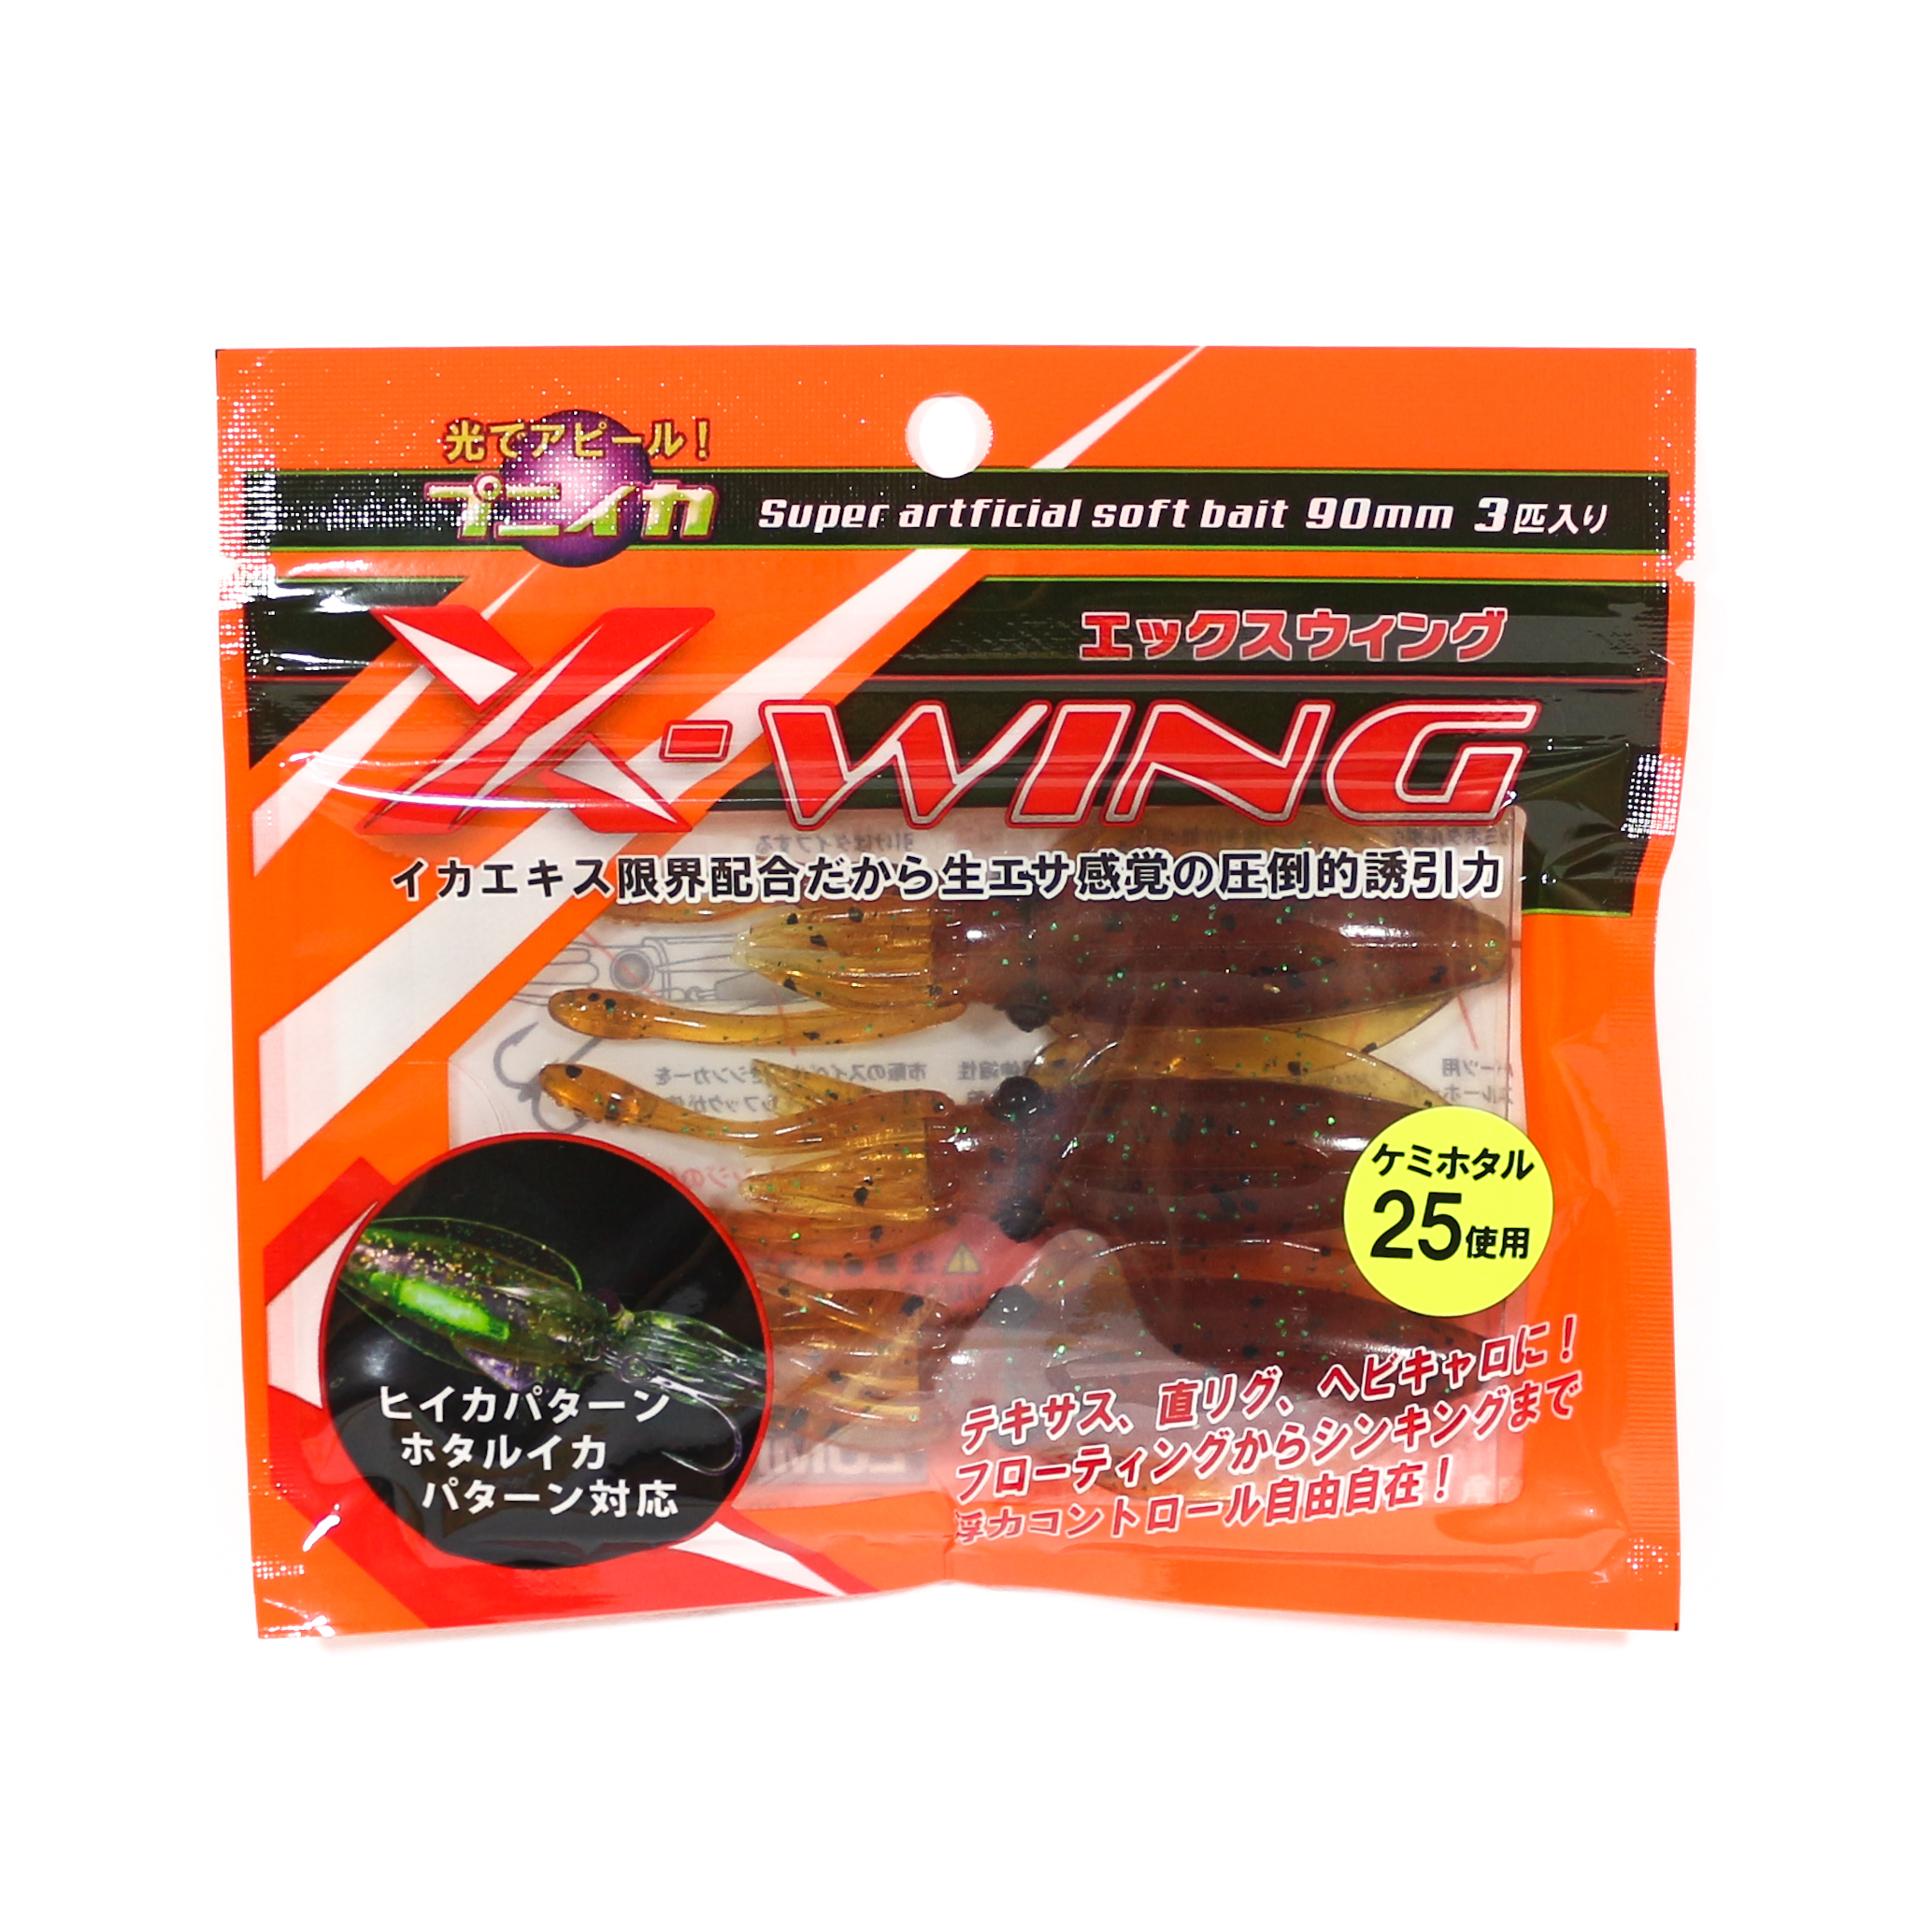 Lumica Soft Lure Puniika X Wing 90mm 3 Pieces Per Pack 125 (3659)